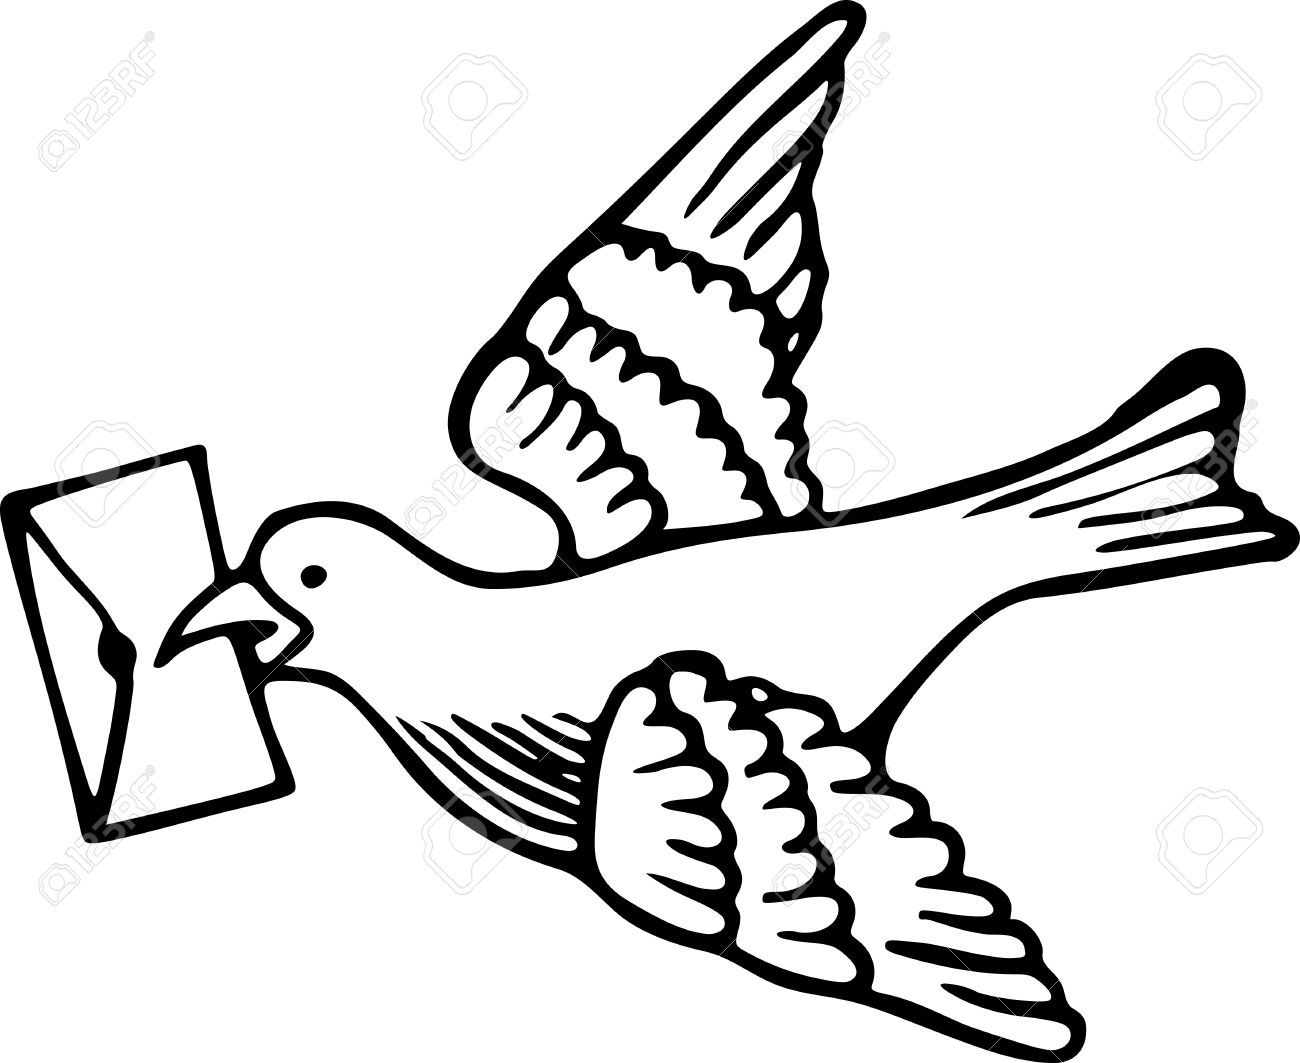 Cute Simple Line Art : Simple dove drawing at getdrawings free for personal use